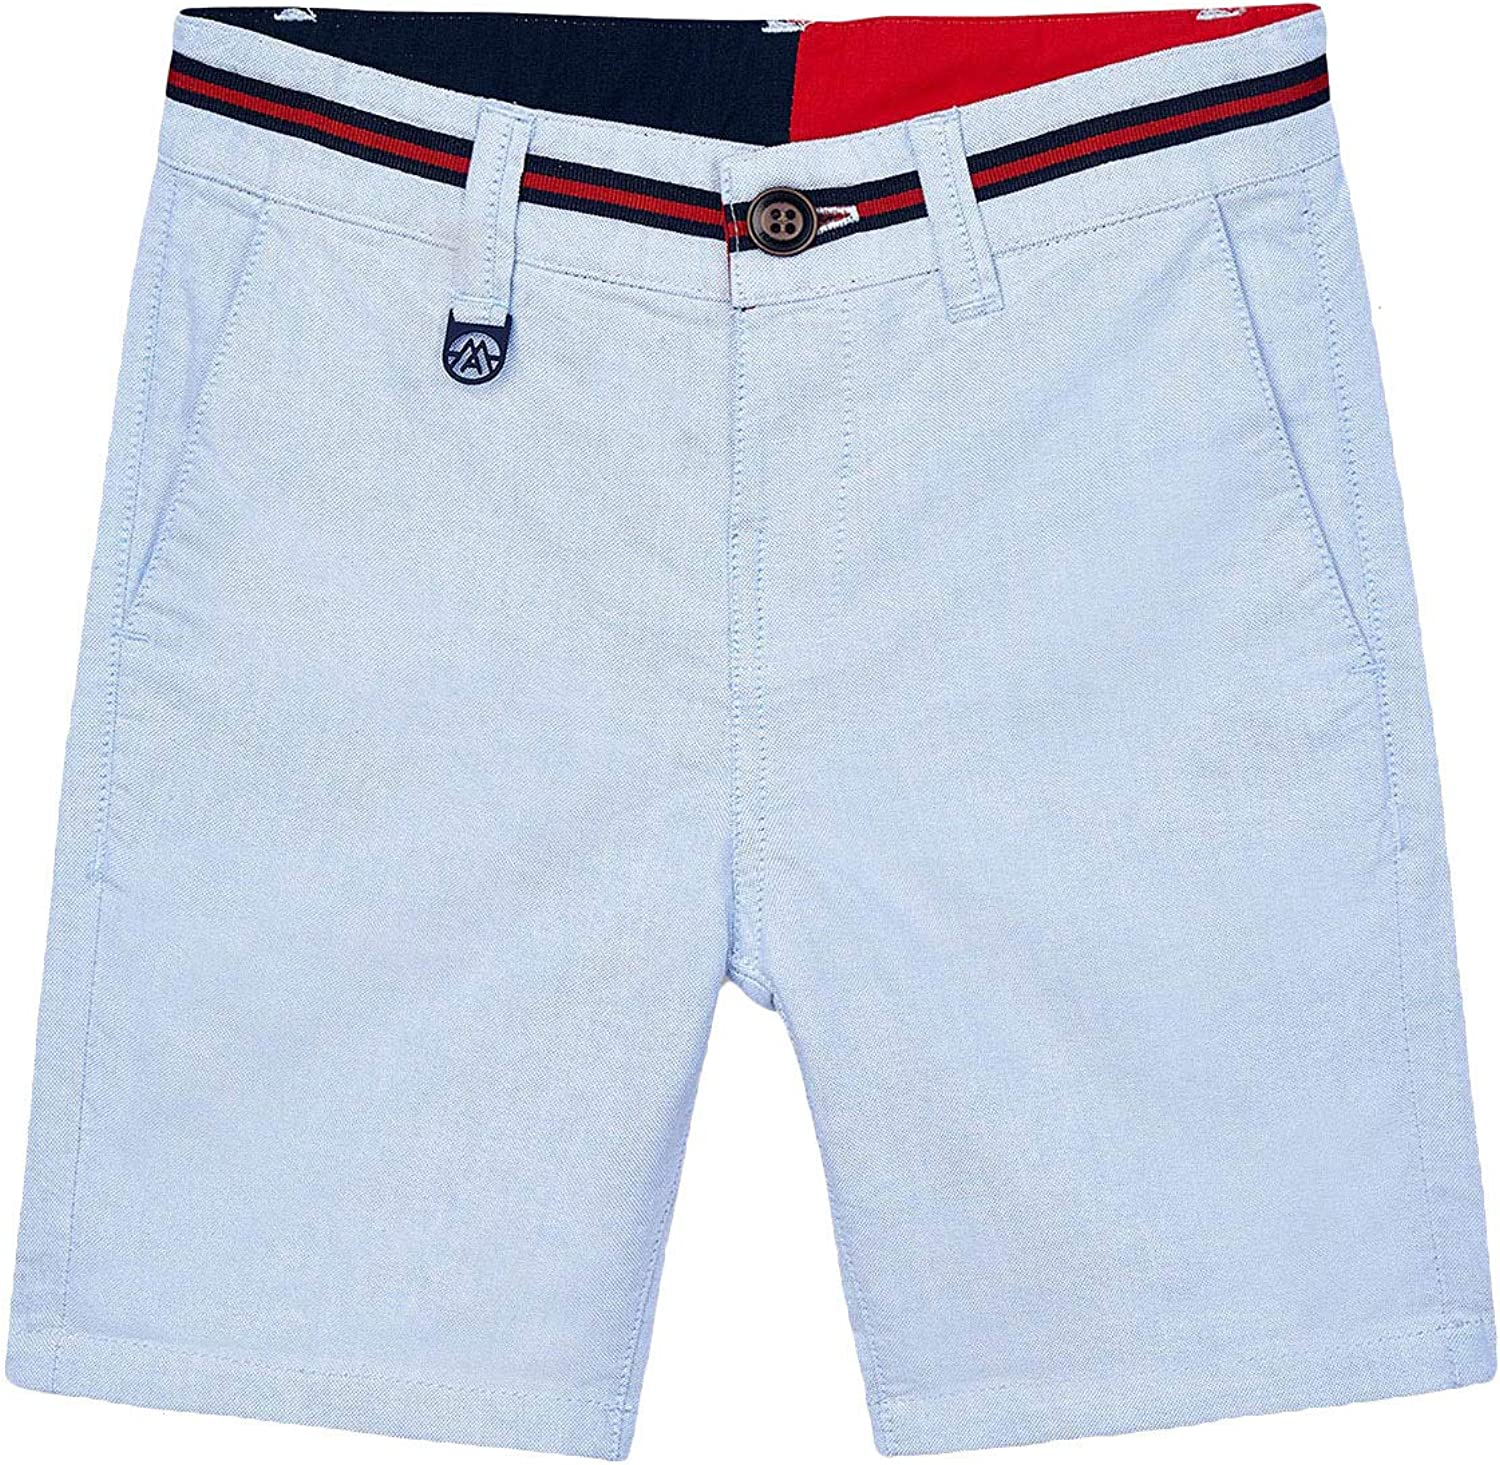 Mayoral - New Shipping Free Oxford Max 66% OFF Shorts Lightblue Boys for 3235